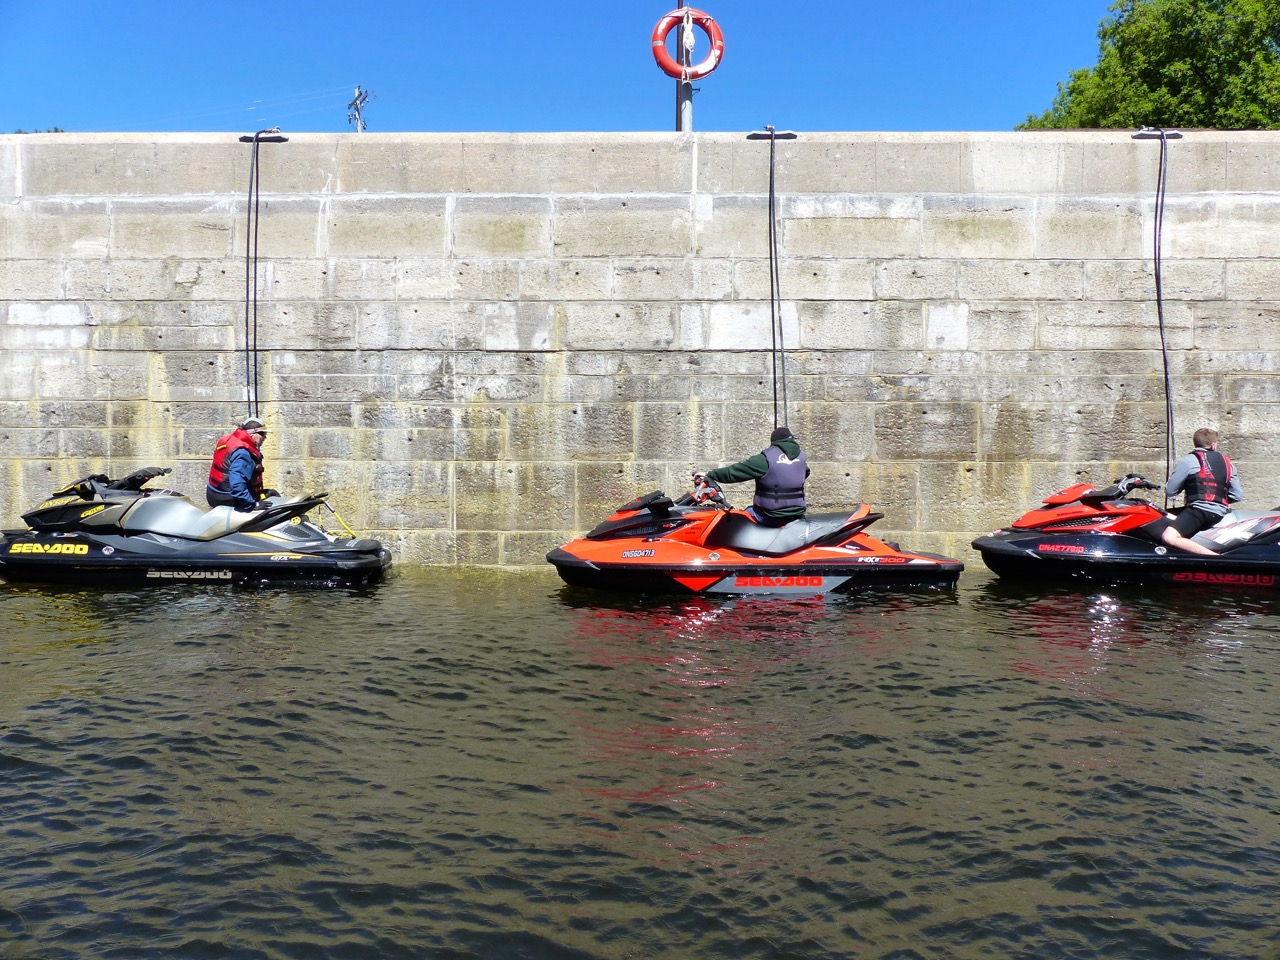 PWC riding new normal means PWC's moored end to end on lock walls.